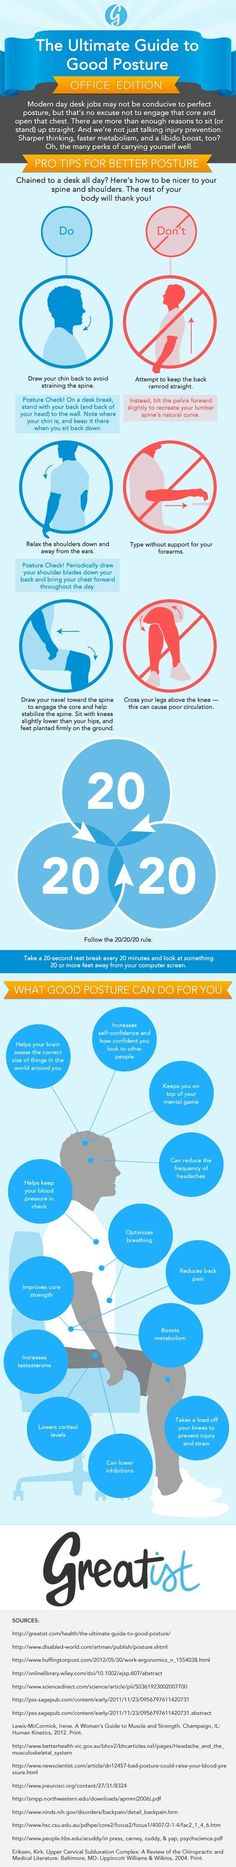 Ultimate Guide to Good Posture at Work [Infographic] #healthy #posture #greatist